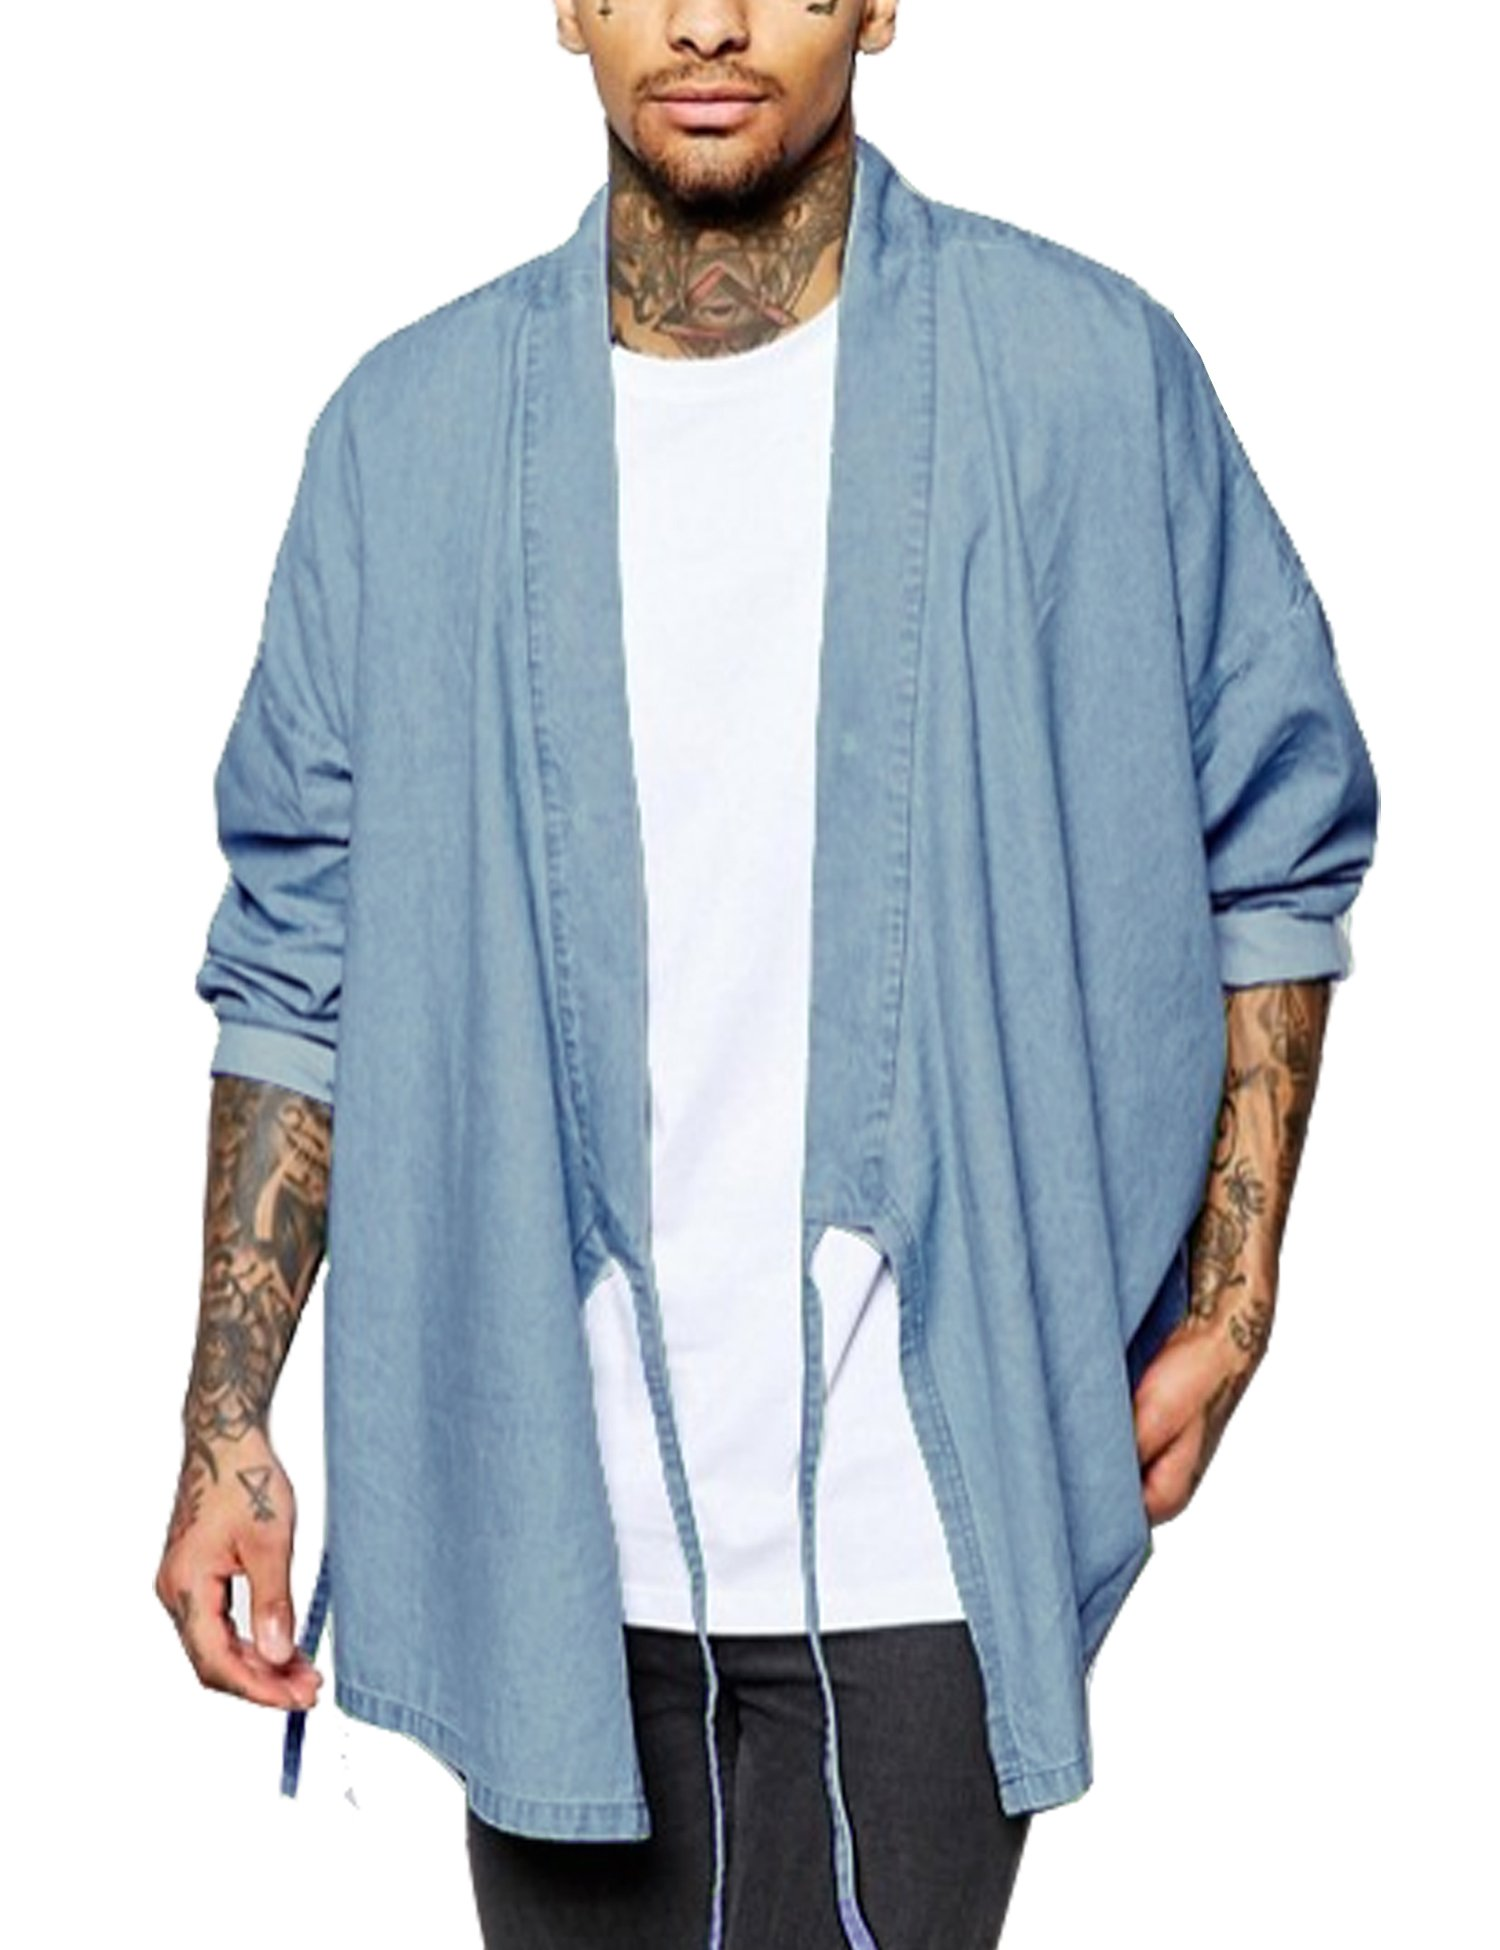 COOFANDY Mens Kimono Casual Long Sleeve Loose Fit Denium Open Front Coat Cloak,Light Blue,Medium by COOFANDY